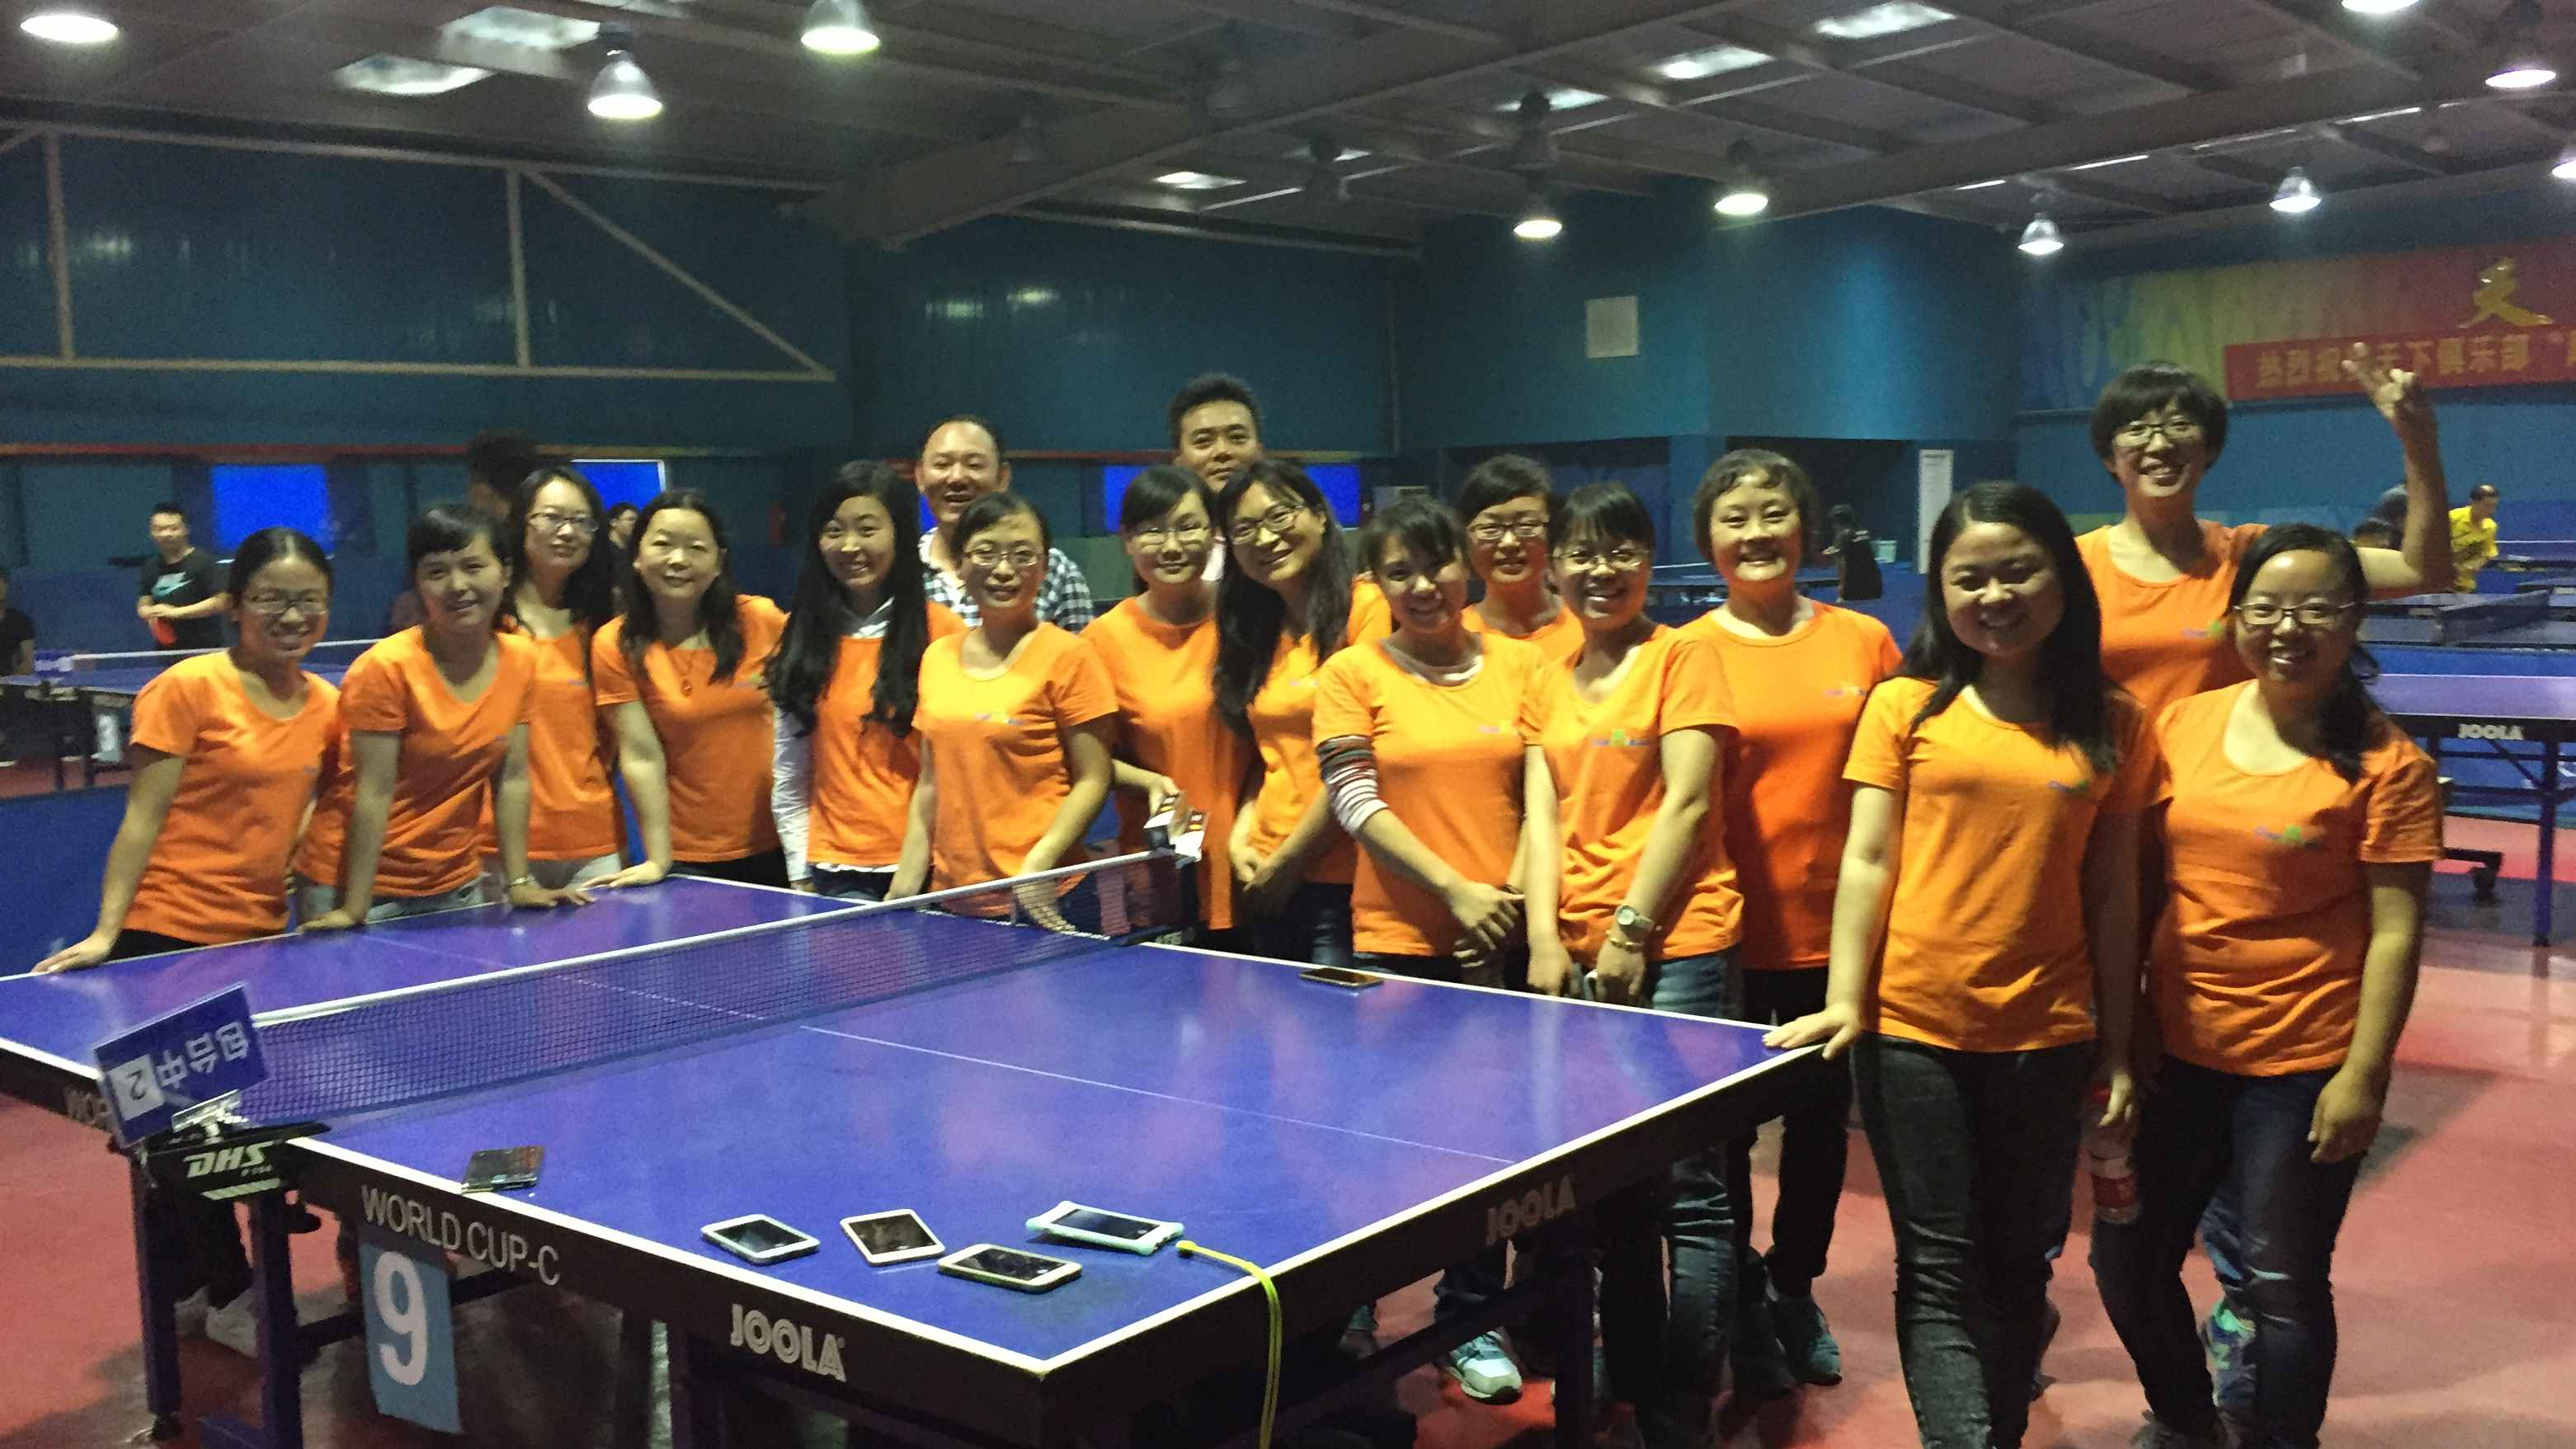 Charmission Table Tennis Game